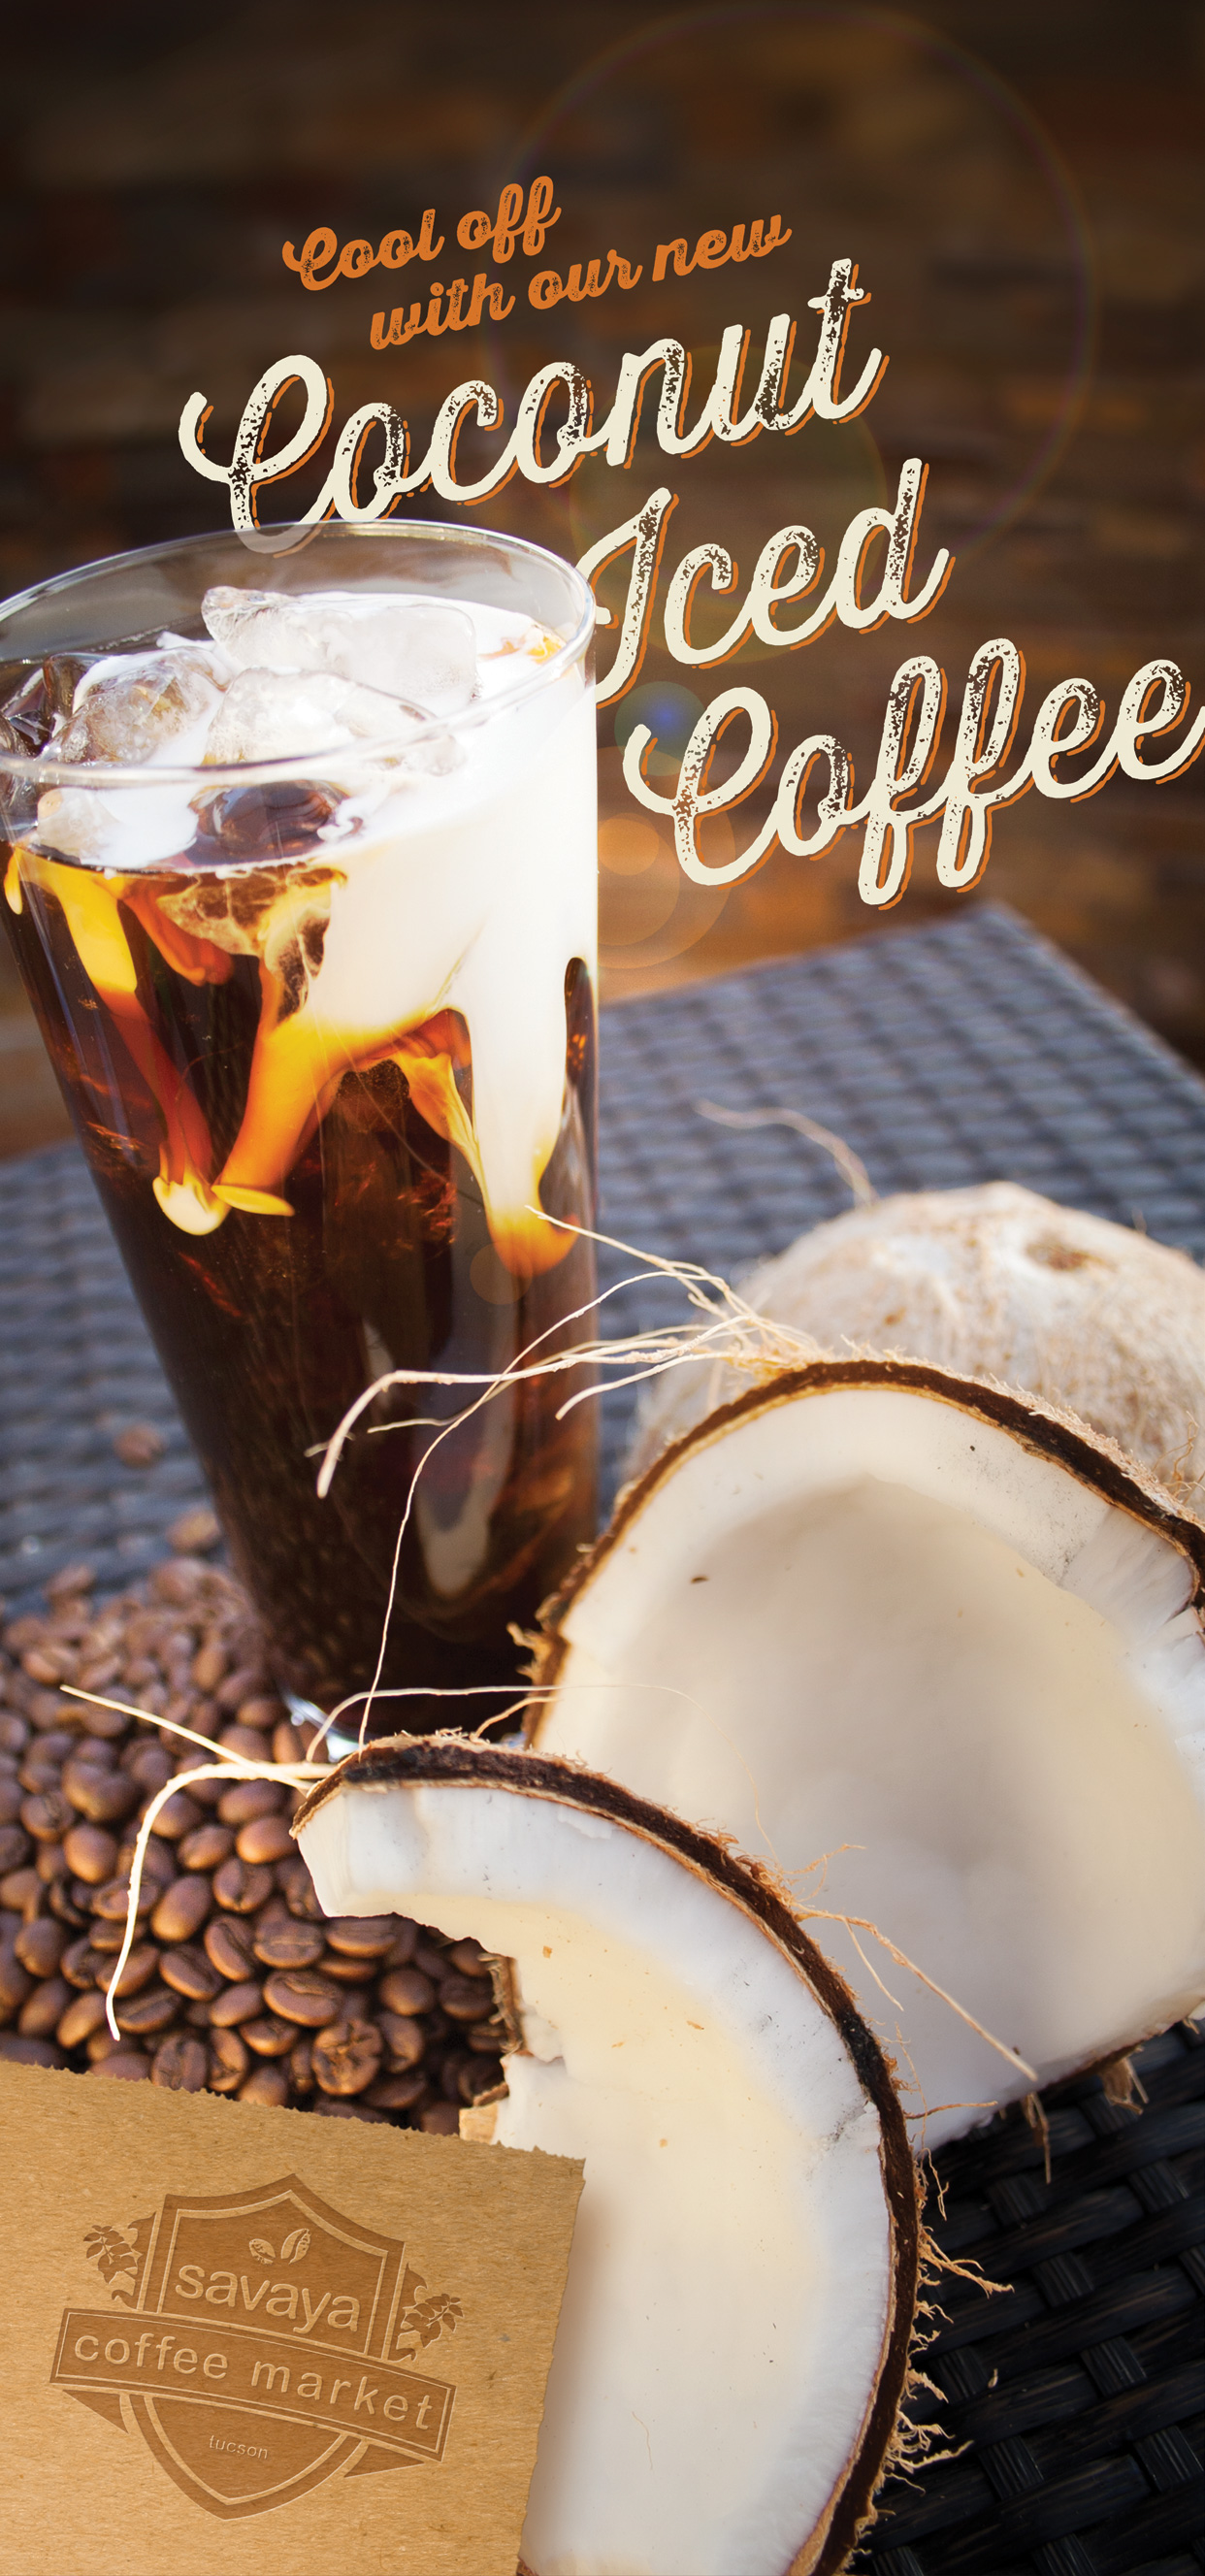 Kaffee Poster Coconut Coffee Poster J Christopher Design